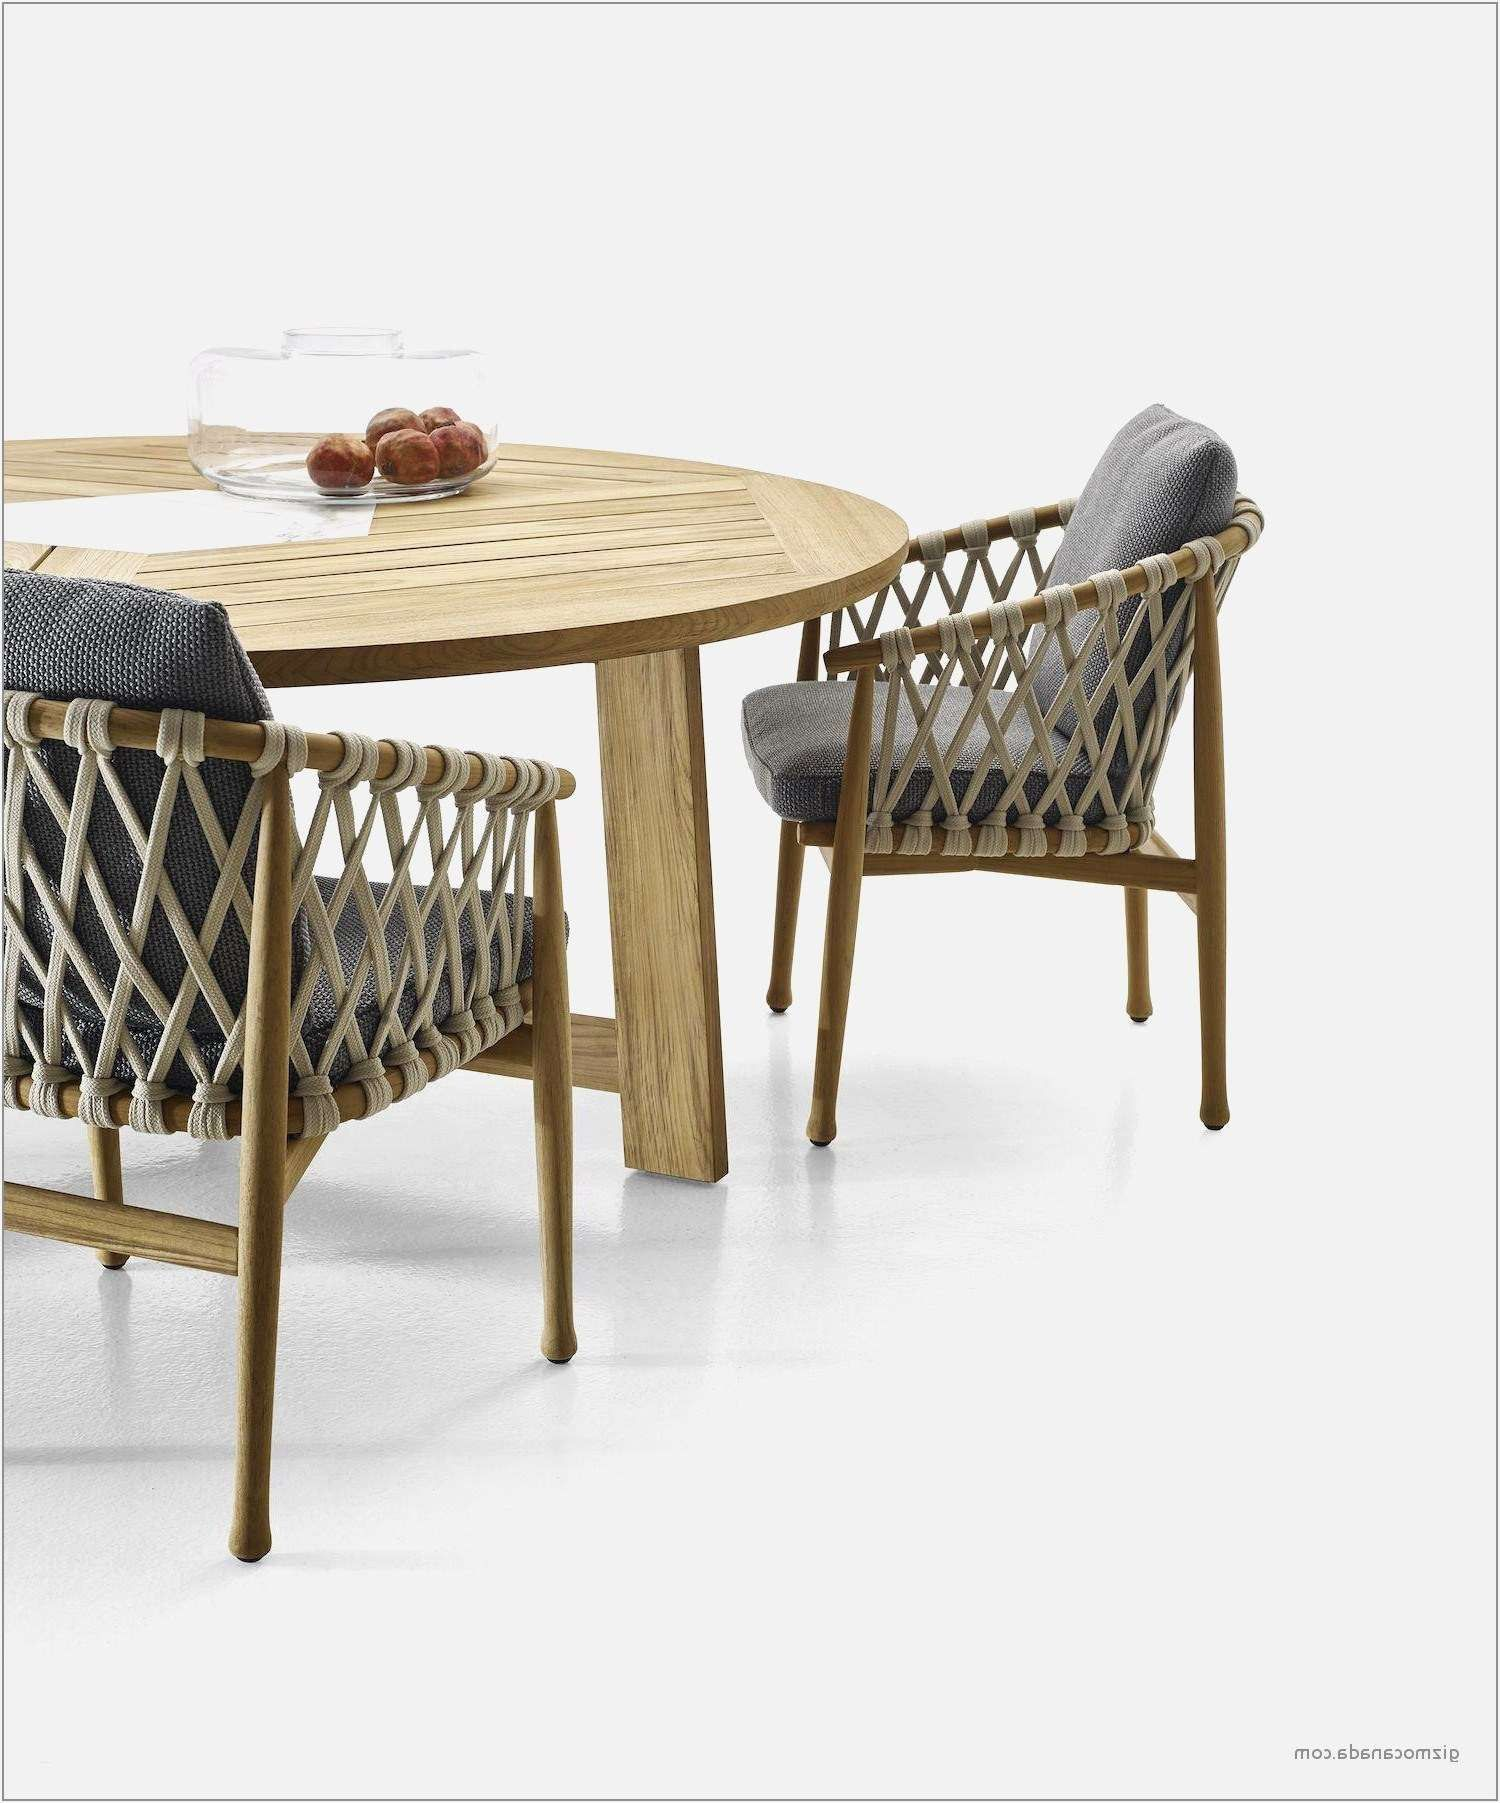 White And Wood Coffee Table Collection Dining Table With Chairs Sale Fresh Furniture Small Co Dining Table Chairs Modern Dining Table Outdoor Dining Table